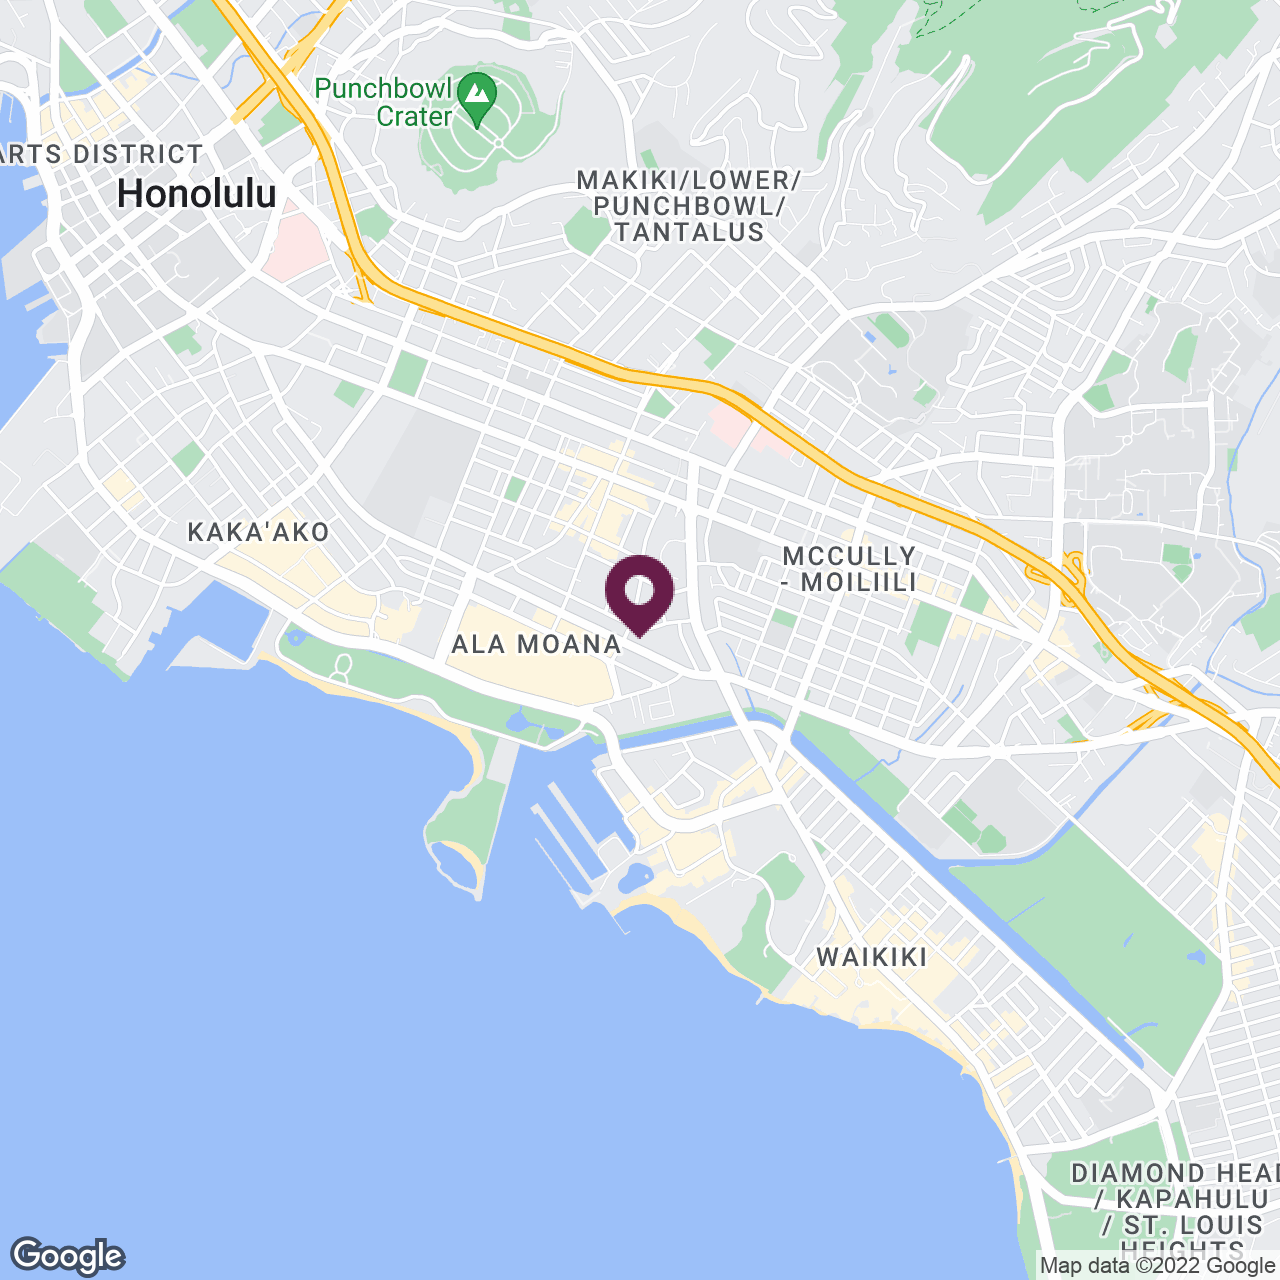 Google Maps static image of Honolulu, HI